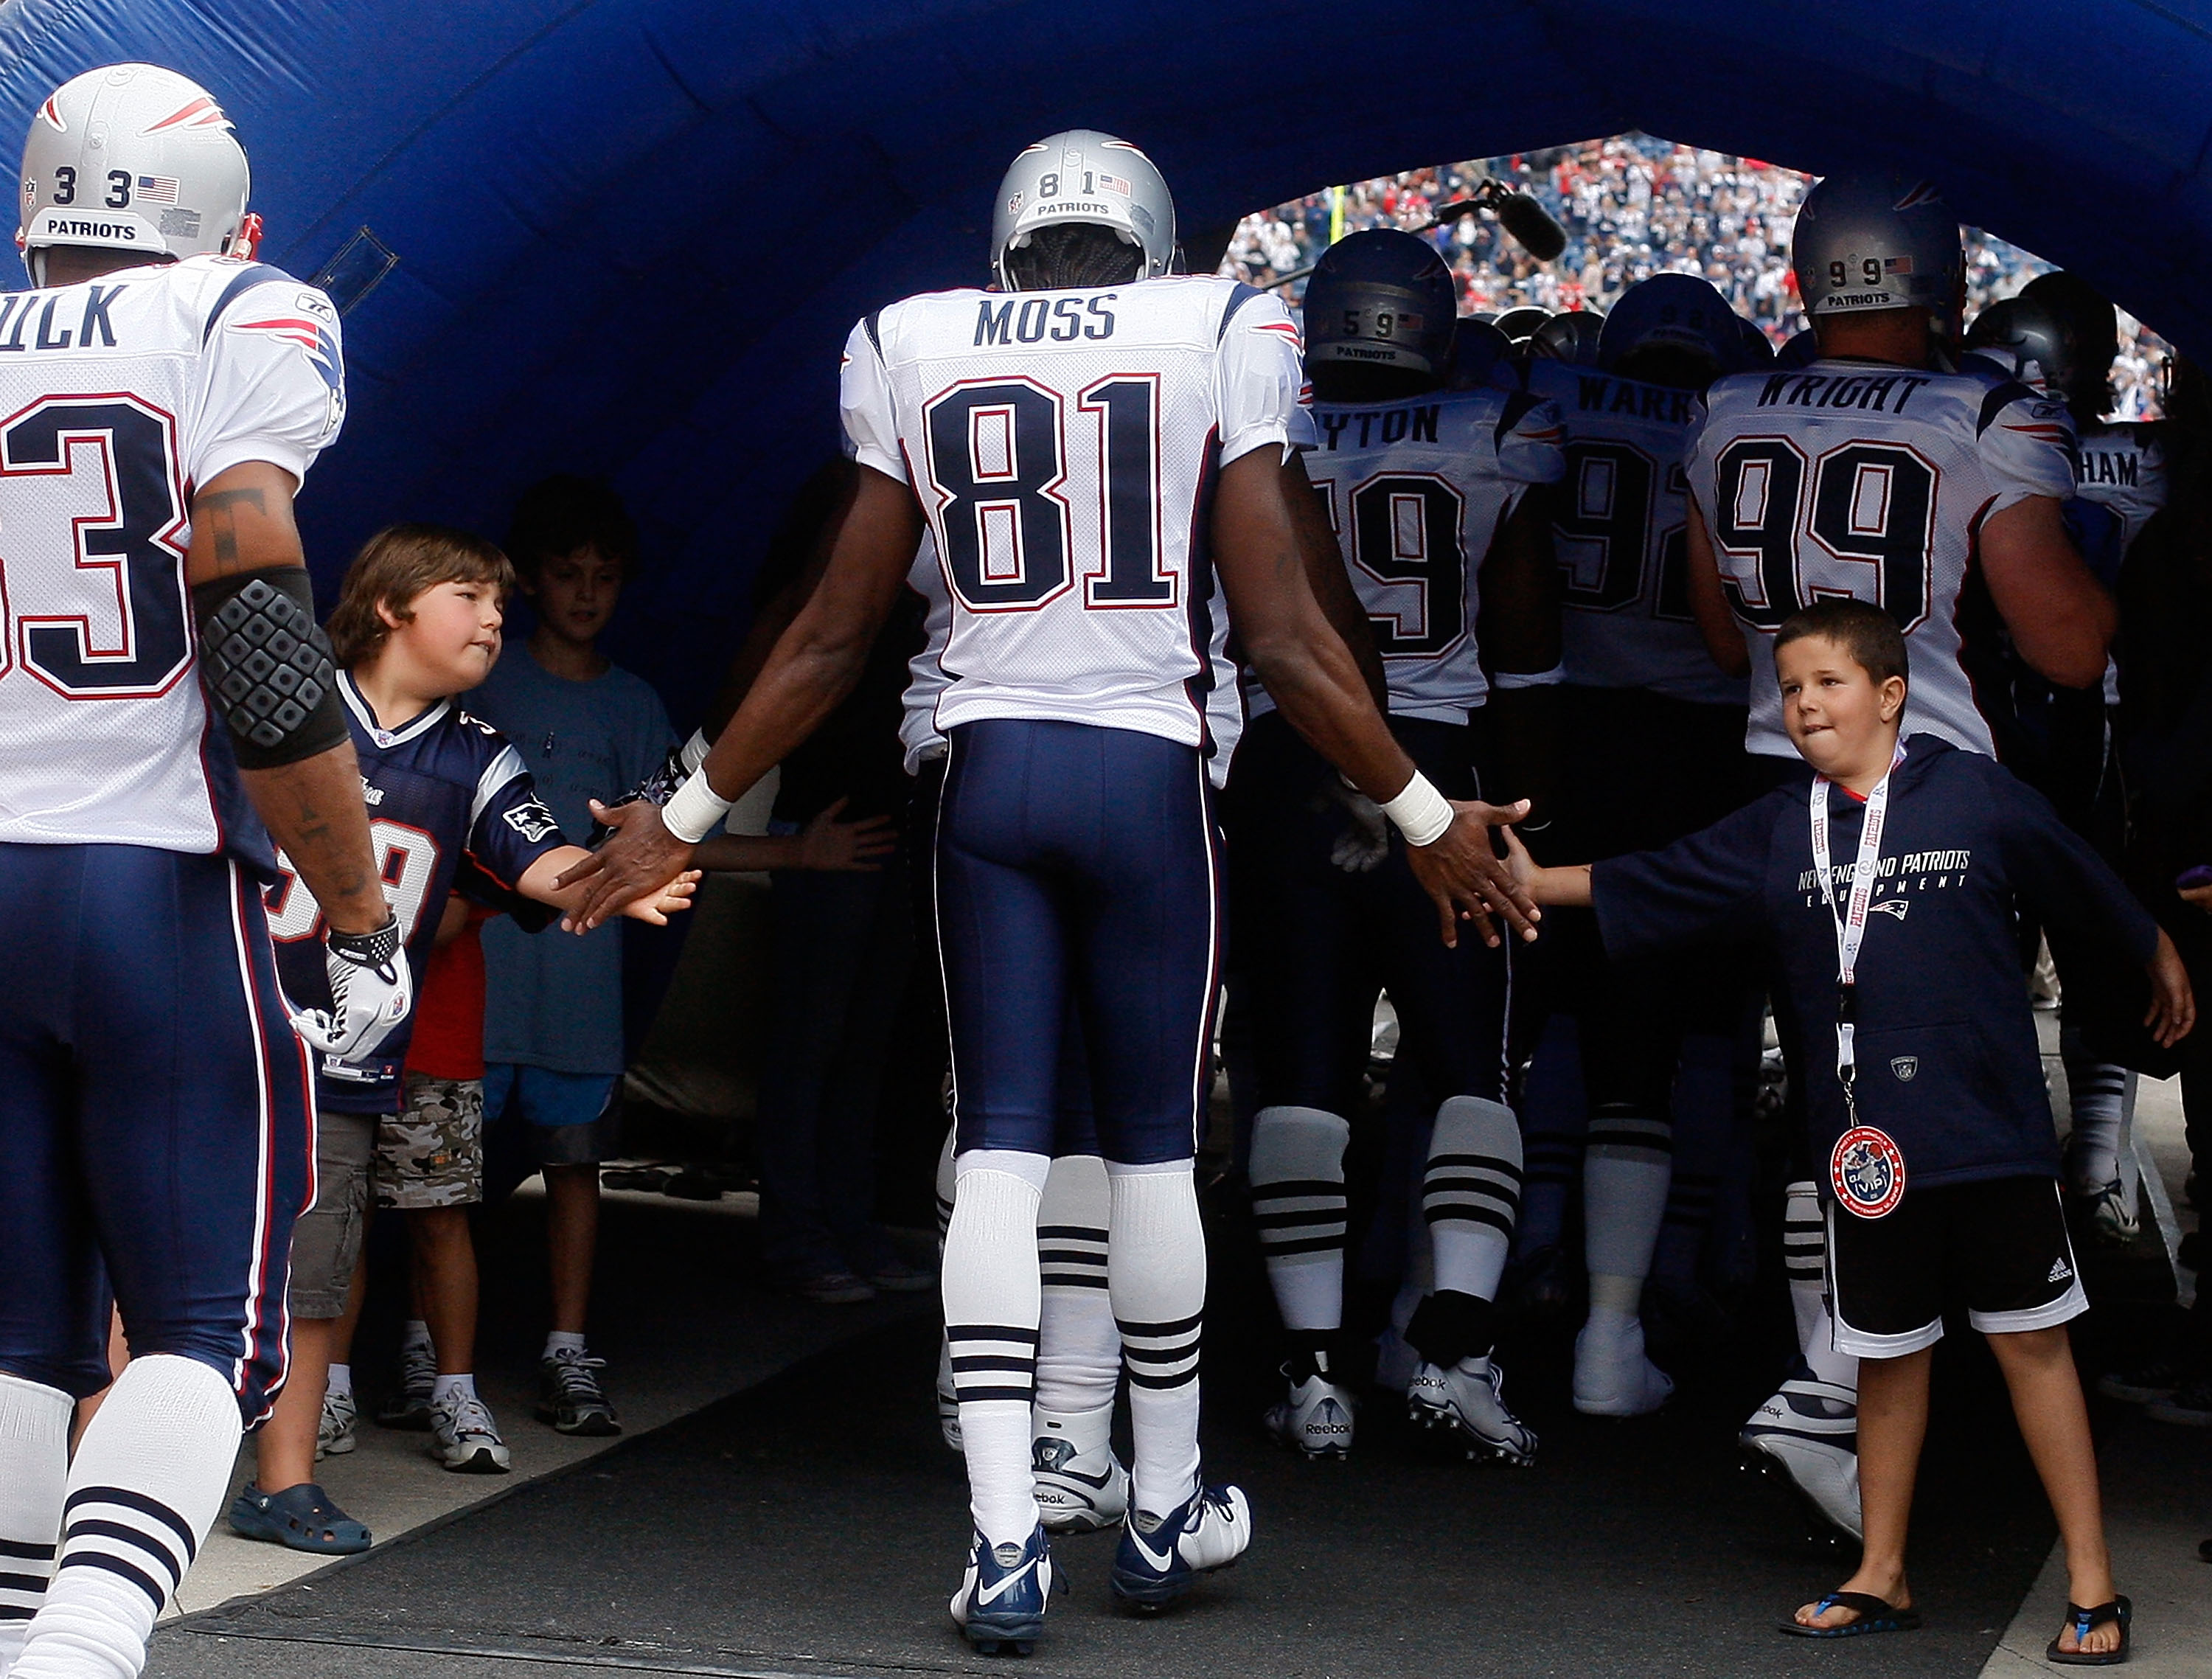 FOXBORO, MA - SEPTEMBER 12: Randy Moss #81 of the New England Patriots enters the field before the NFL season opener against the Cincinnati Bengals at Gillette Stadium on September 12, 2010 in Foxboro, Massachusetts. (Photo by Jim Rogash/Getty Images)